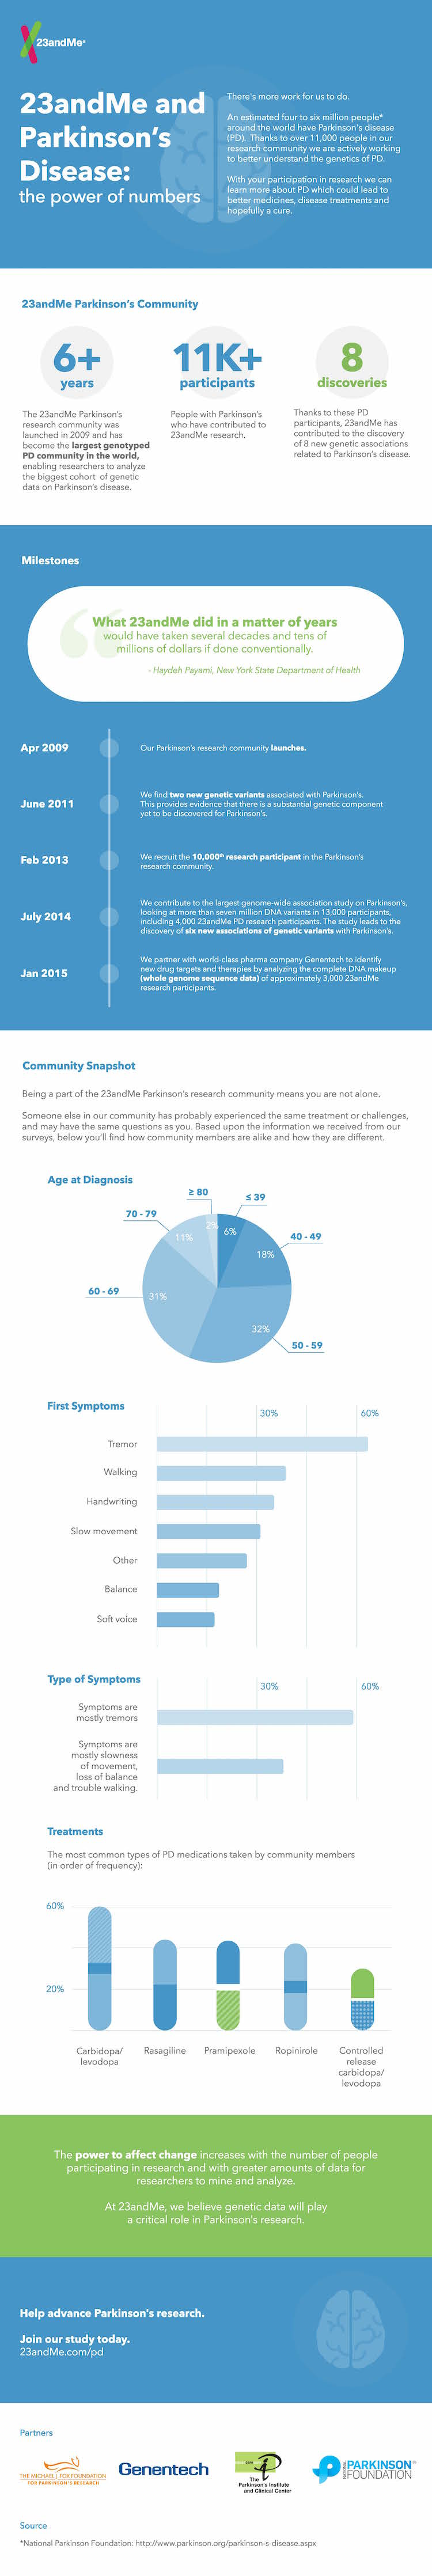 07172015_PDrecruitInfographic_v14(2)